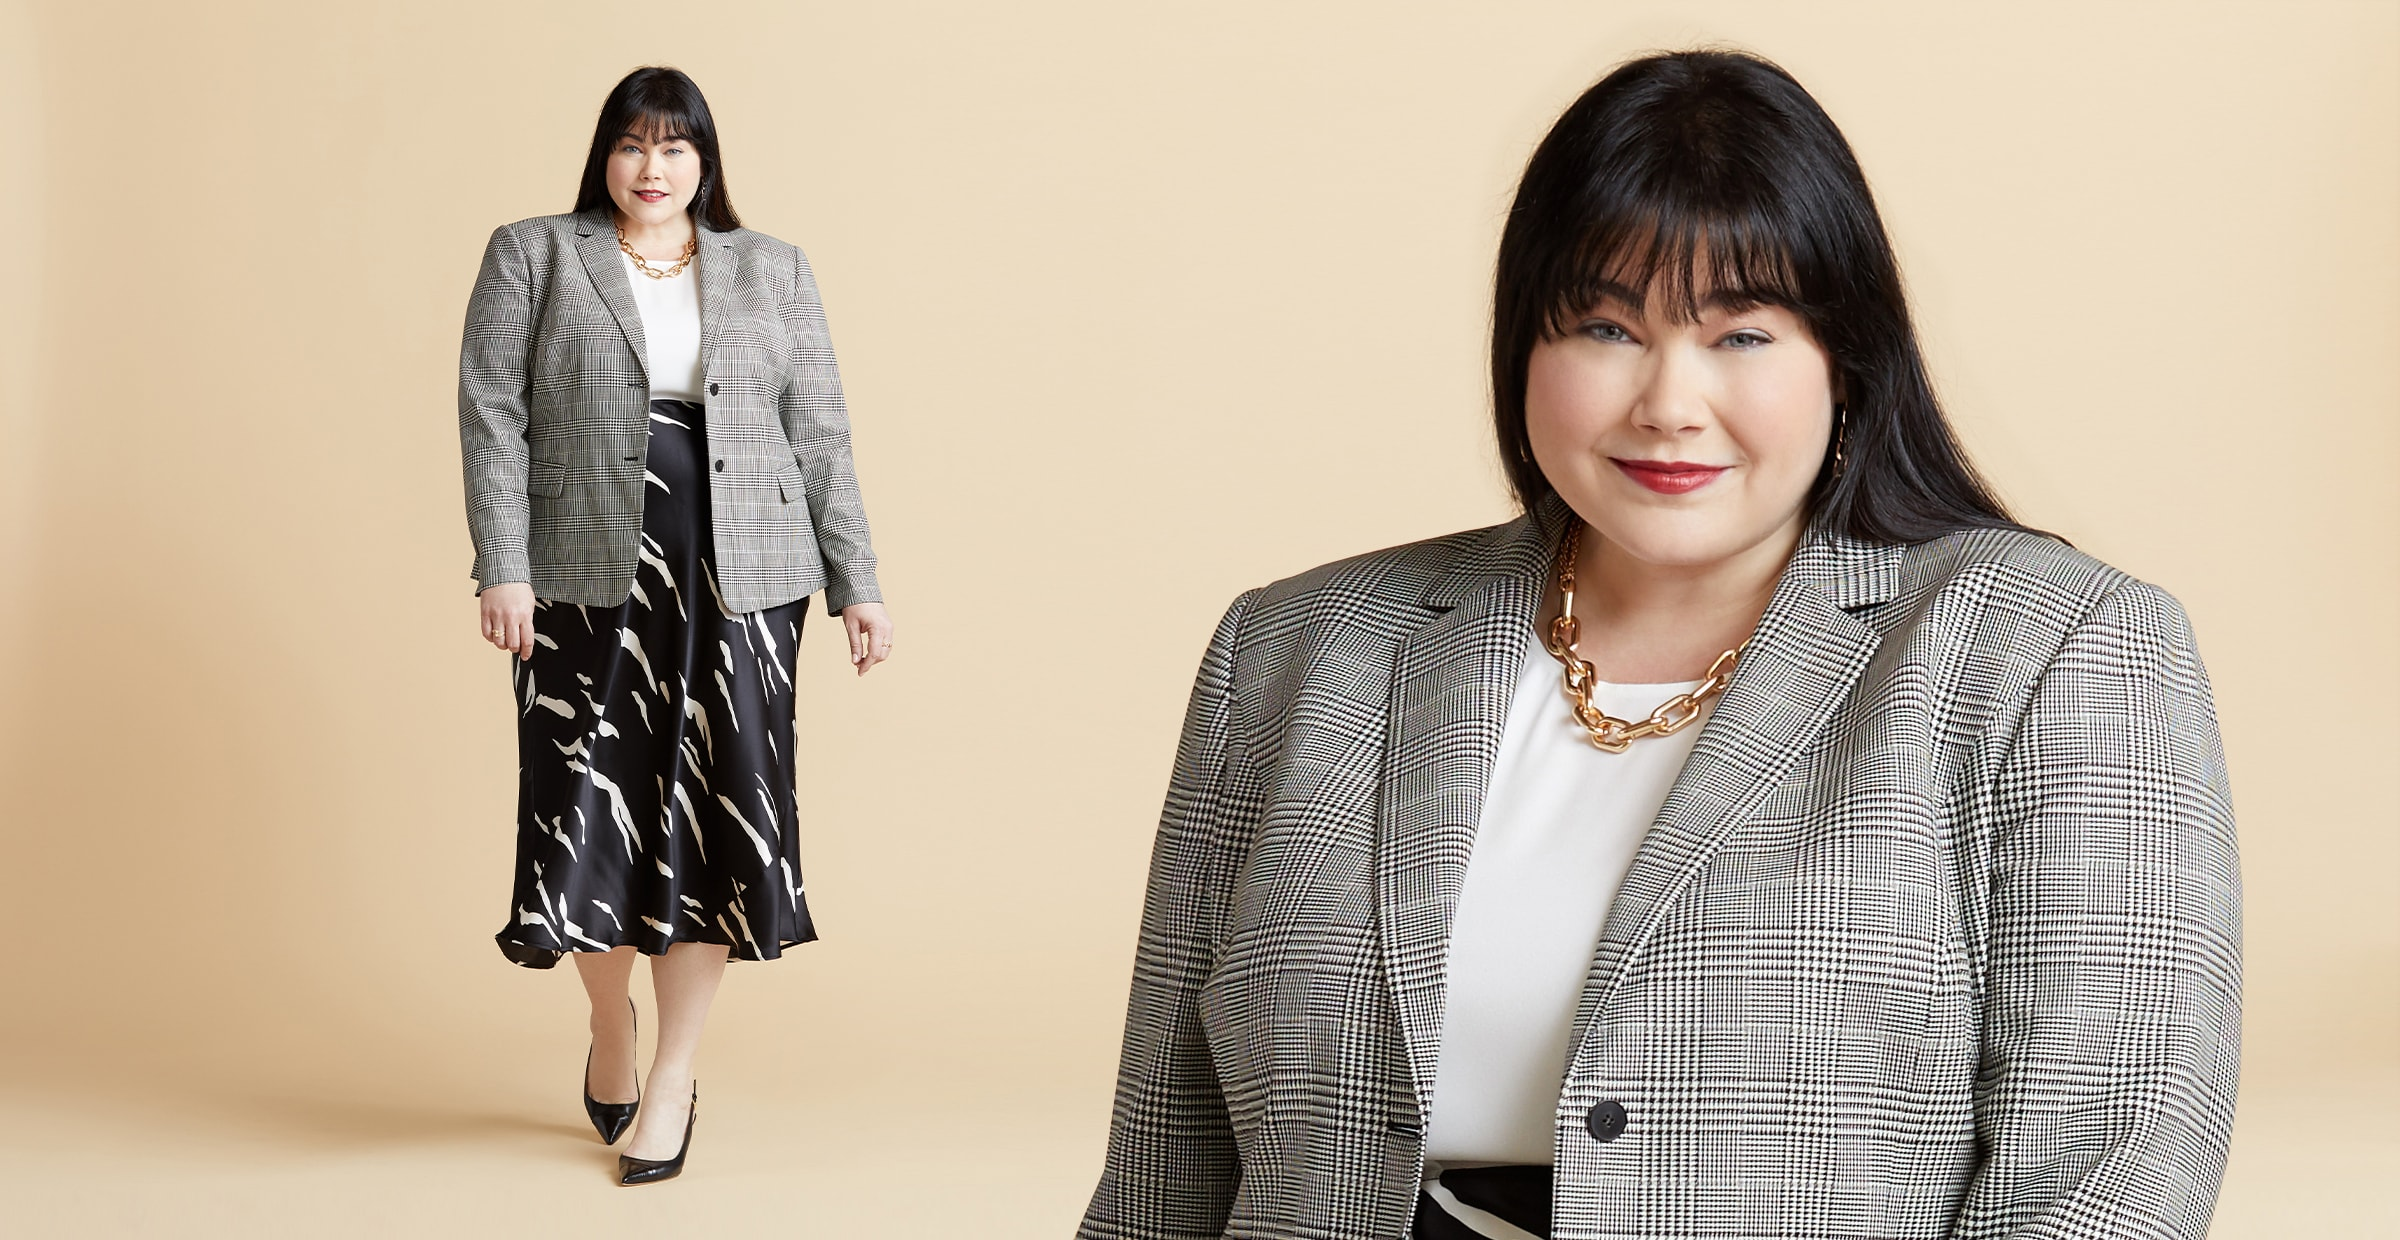 Plus-size work outfit